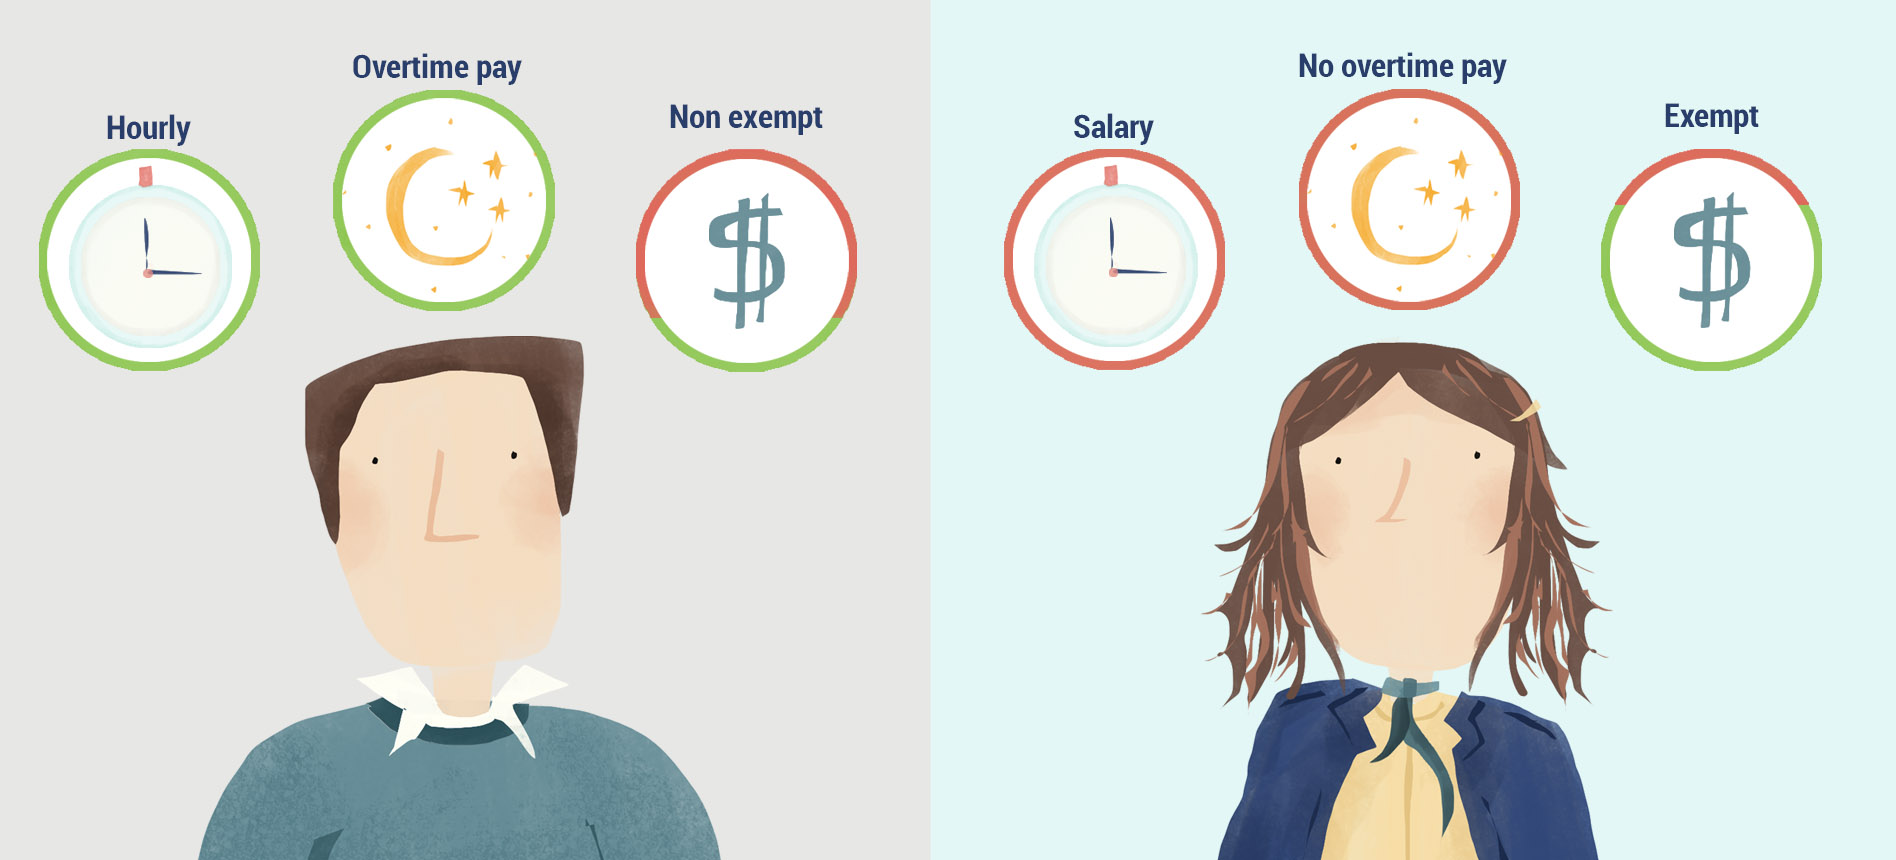 An illustration showing the difference between exempt and non-exempt employees